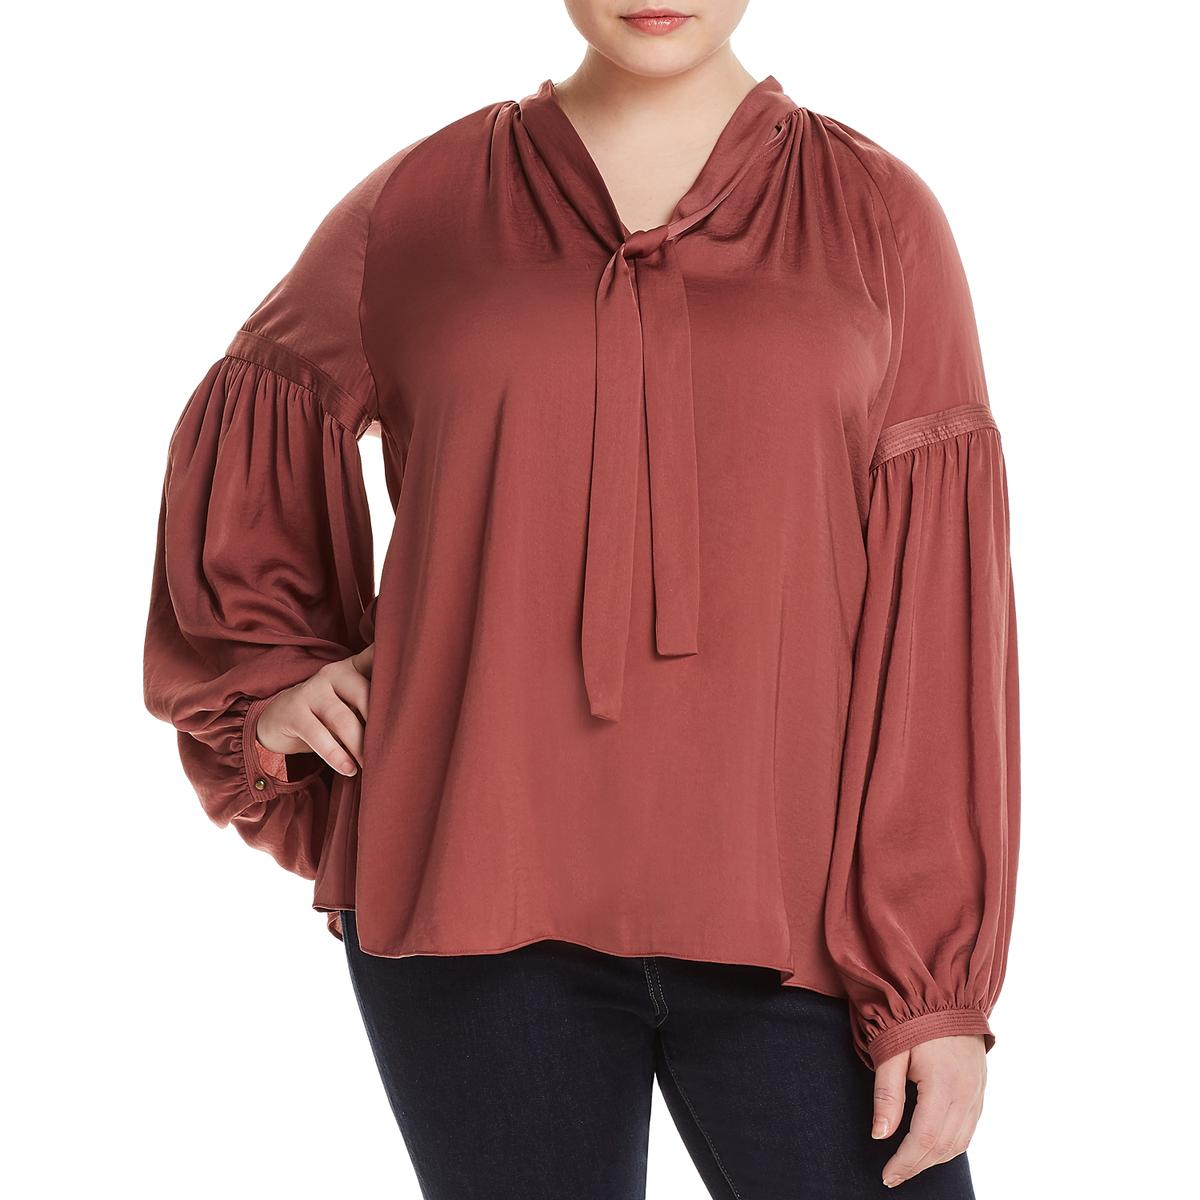 3028a4e050a Details about Lucky Brand Womens Jenna Satin Tie-Neck Peasant Top Blouse  Plus BHFO 5604